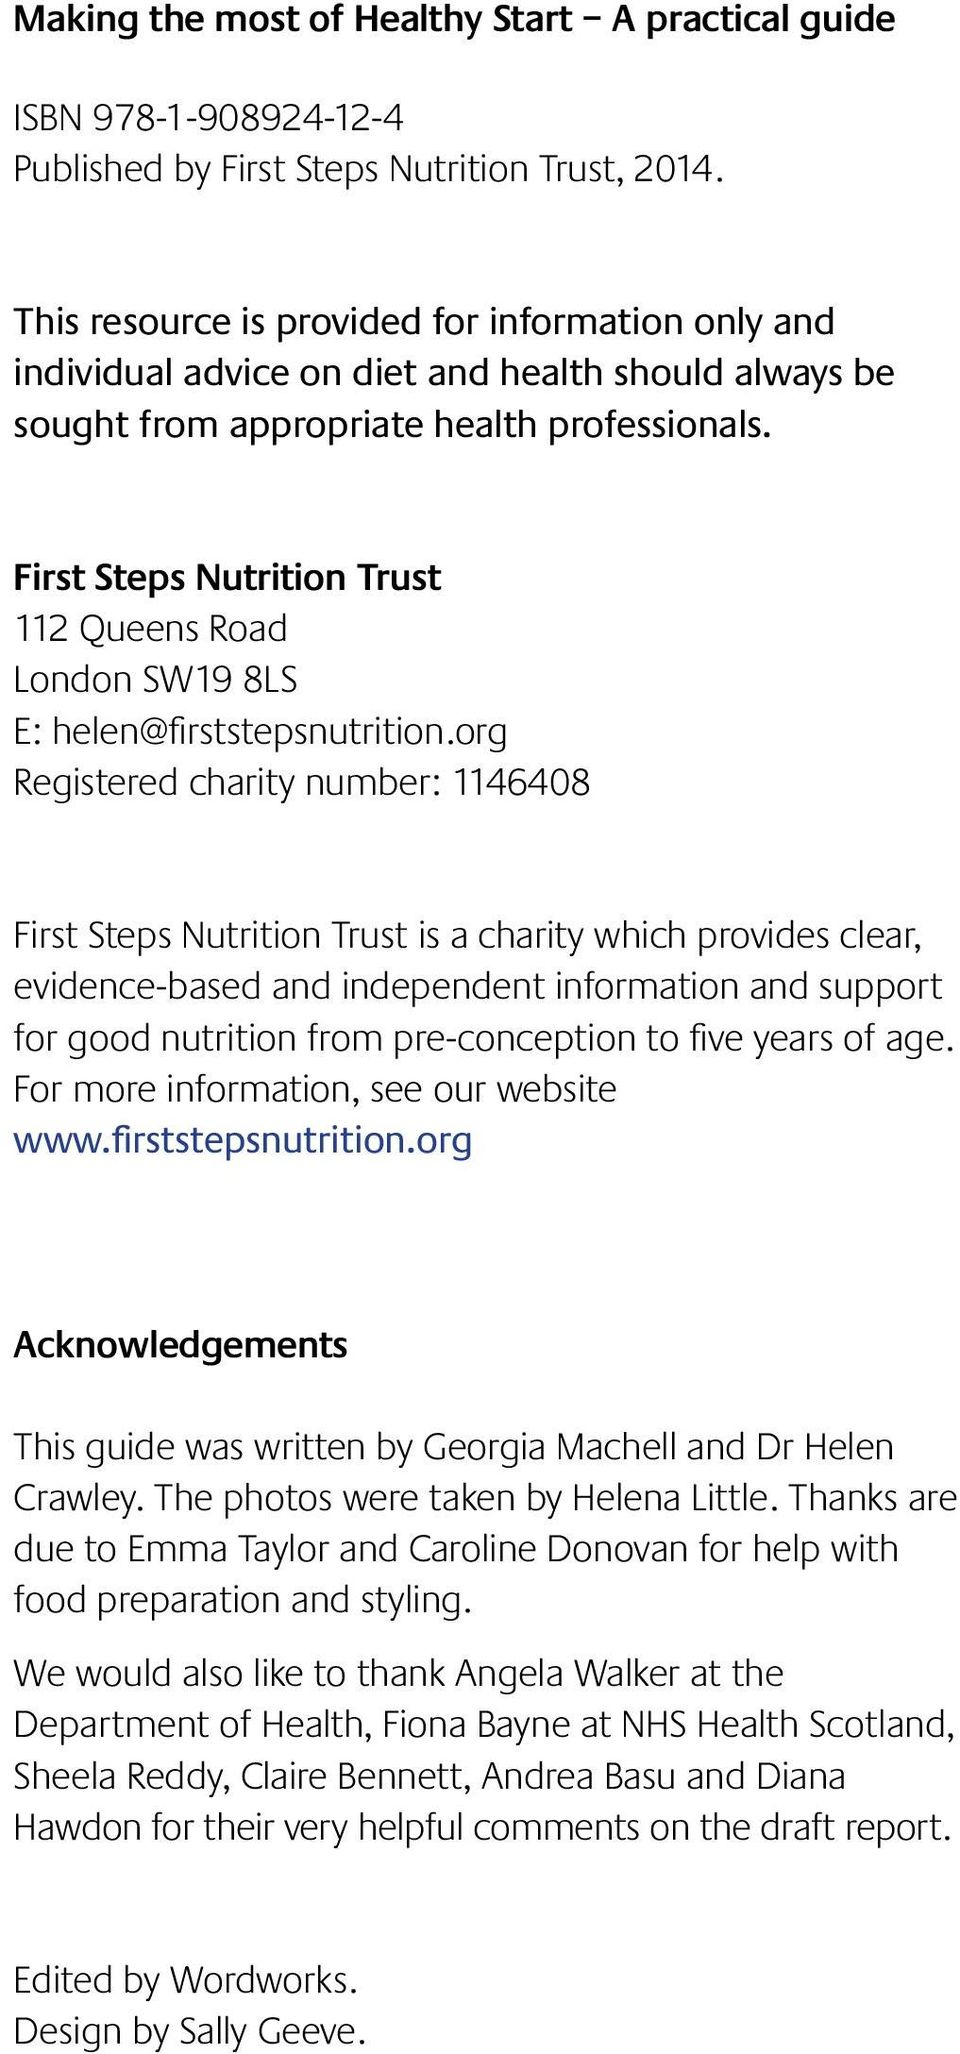 First Steps Nutrition Trust 112 Queens Road London SW19 8LS E: helen@firststepsnutrition.